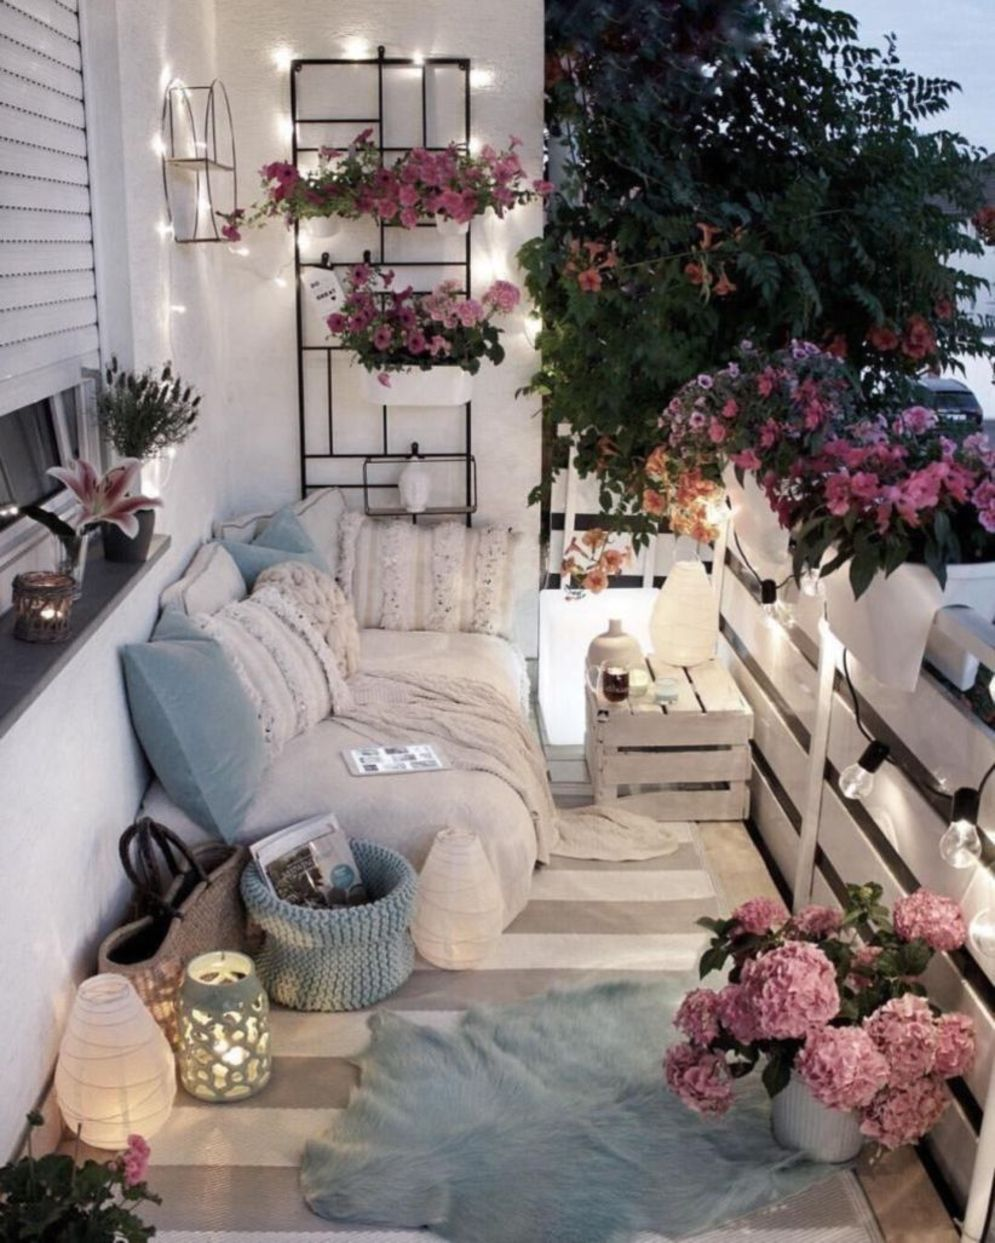 Clever apartment balcony conversion maximizing small space into functional living area Image 36